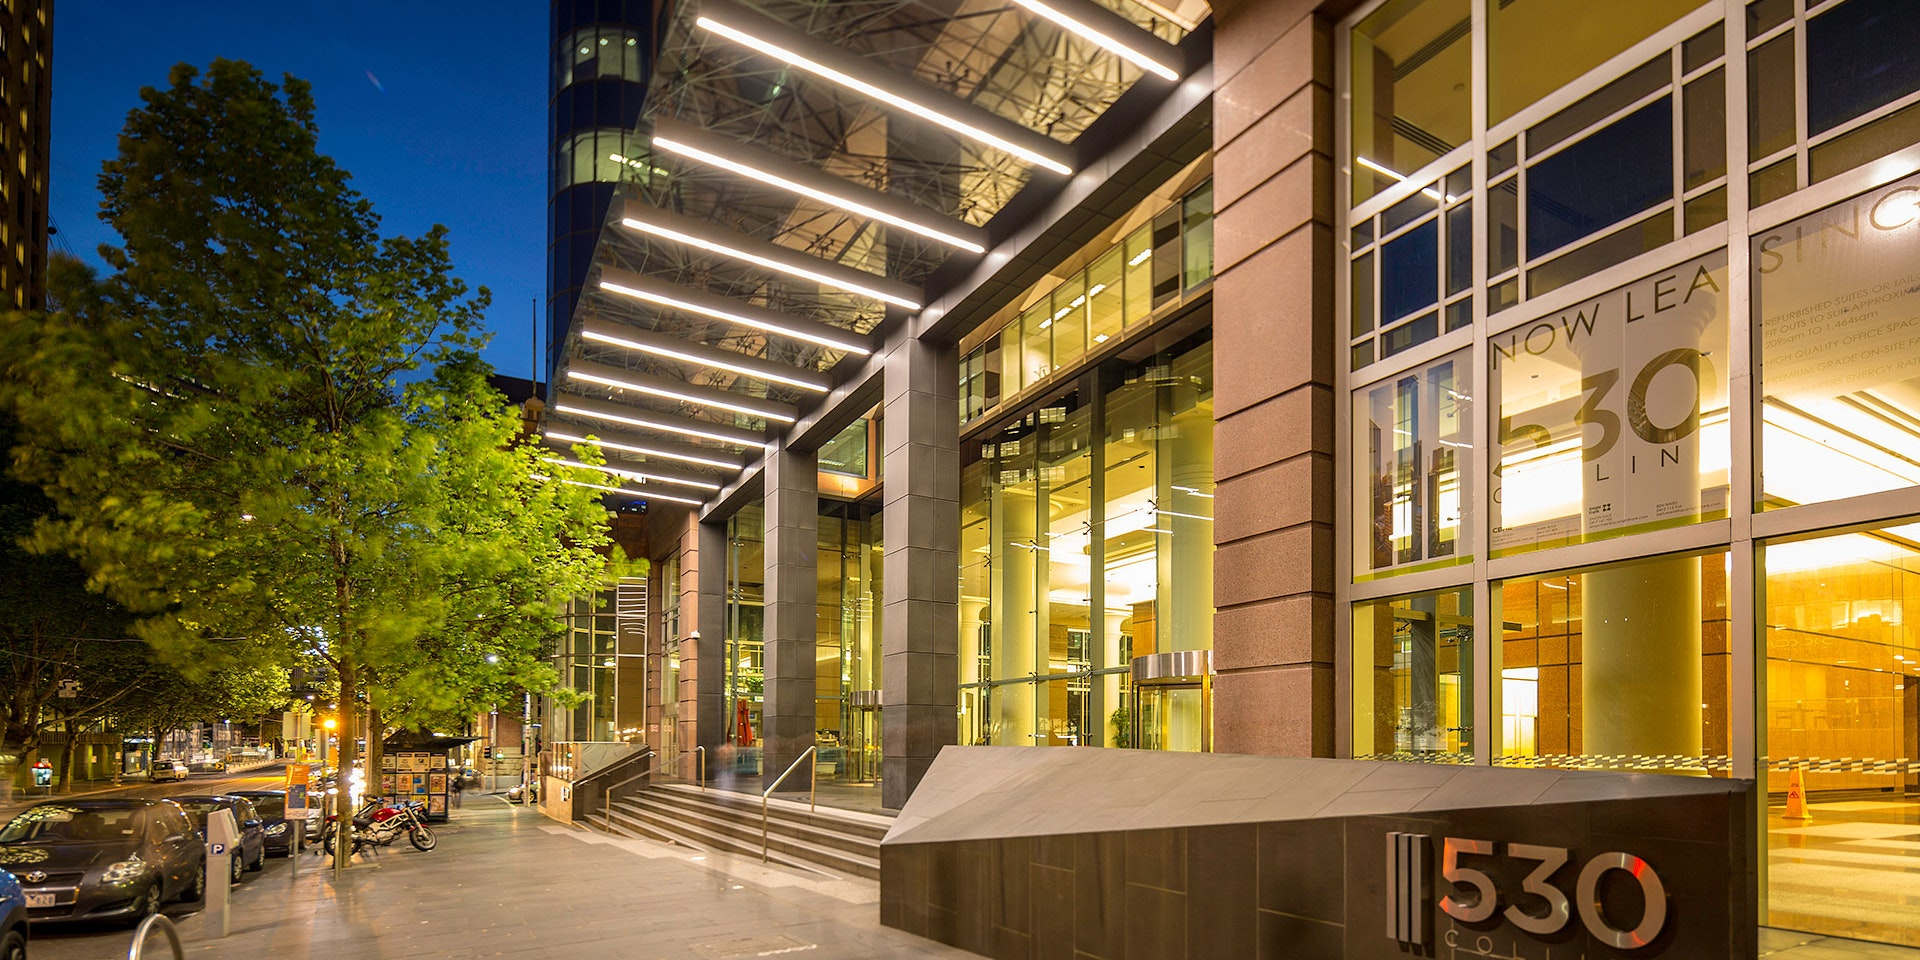 Beam high-power linear luminaire in application, installed on the facade of 530 Collins Street in Melbourne. Architectural LED Lighting.